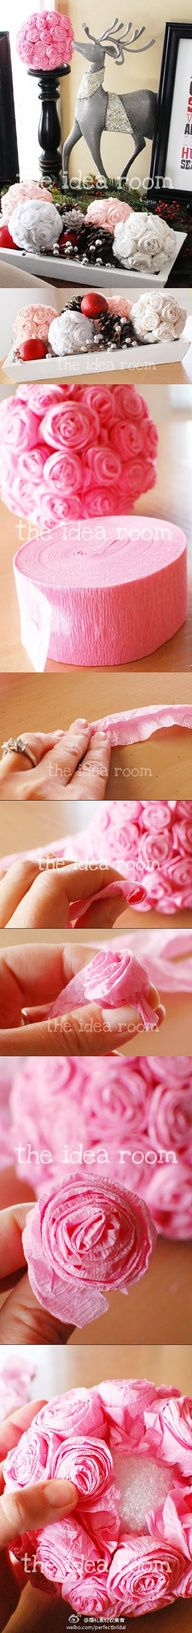 How sweet! Crepe paper rolled flower-covered balls.